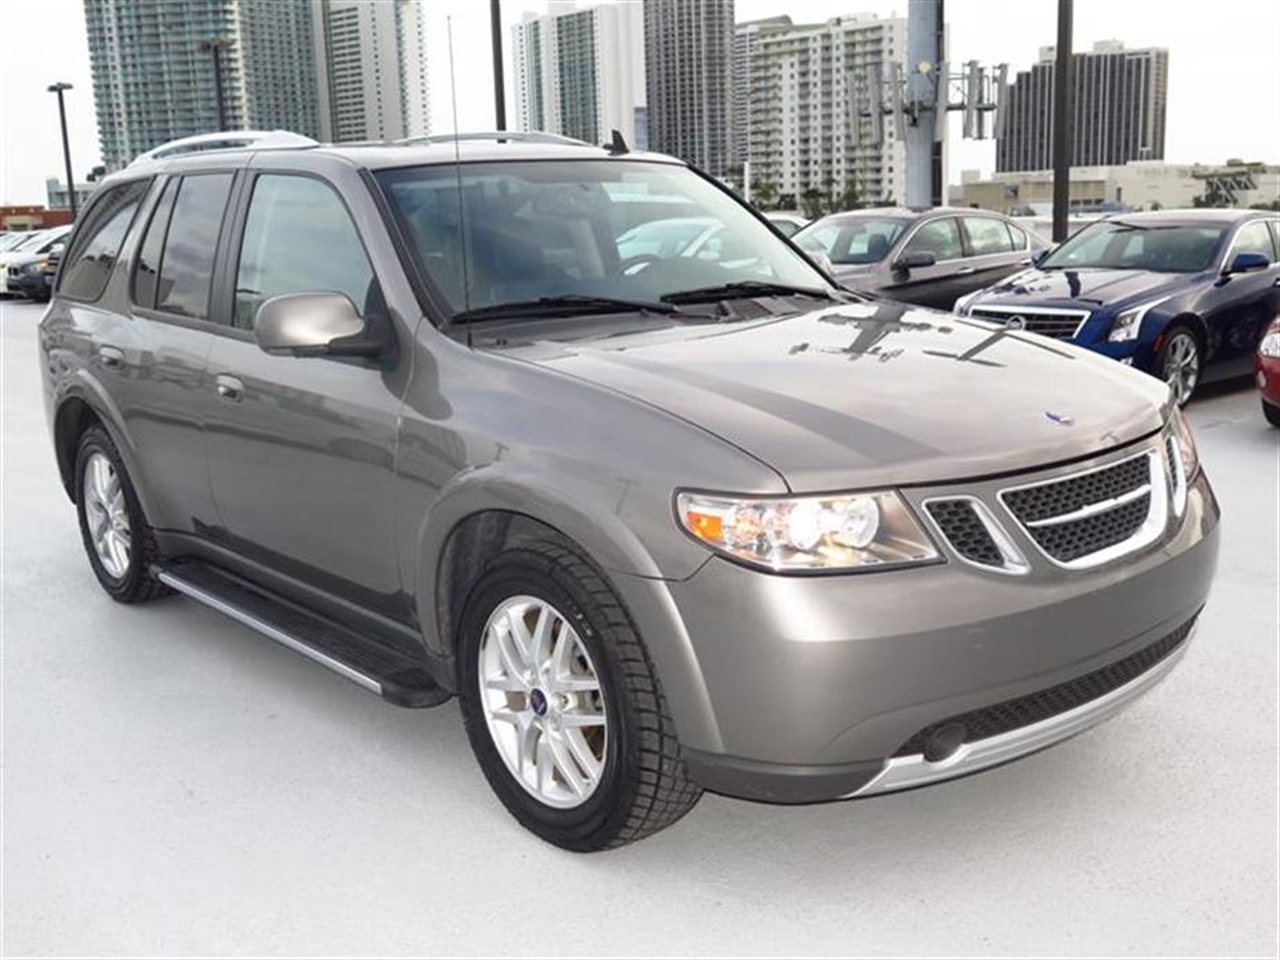 2009 SAAB 9-7X AWD 4dr 42i 61894 miles Air conditioning dual-zone automatic climate control with